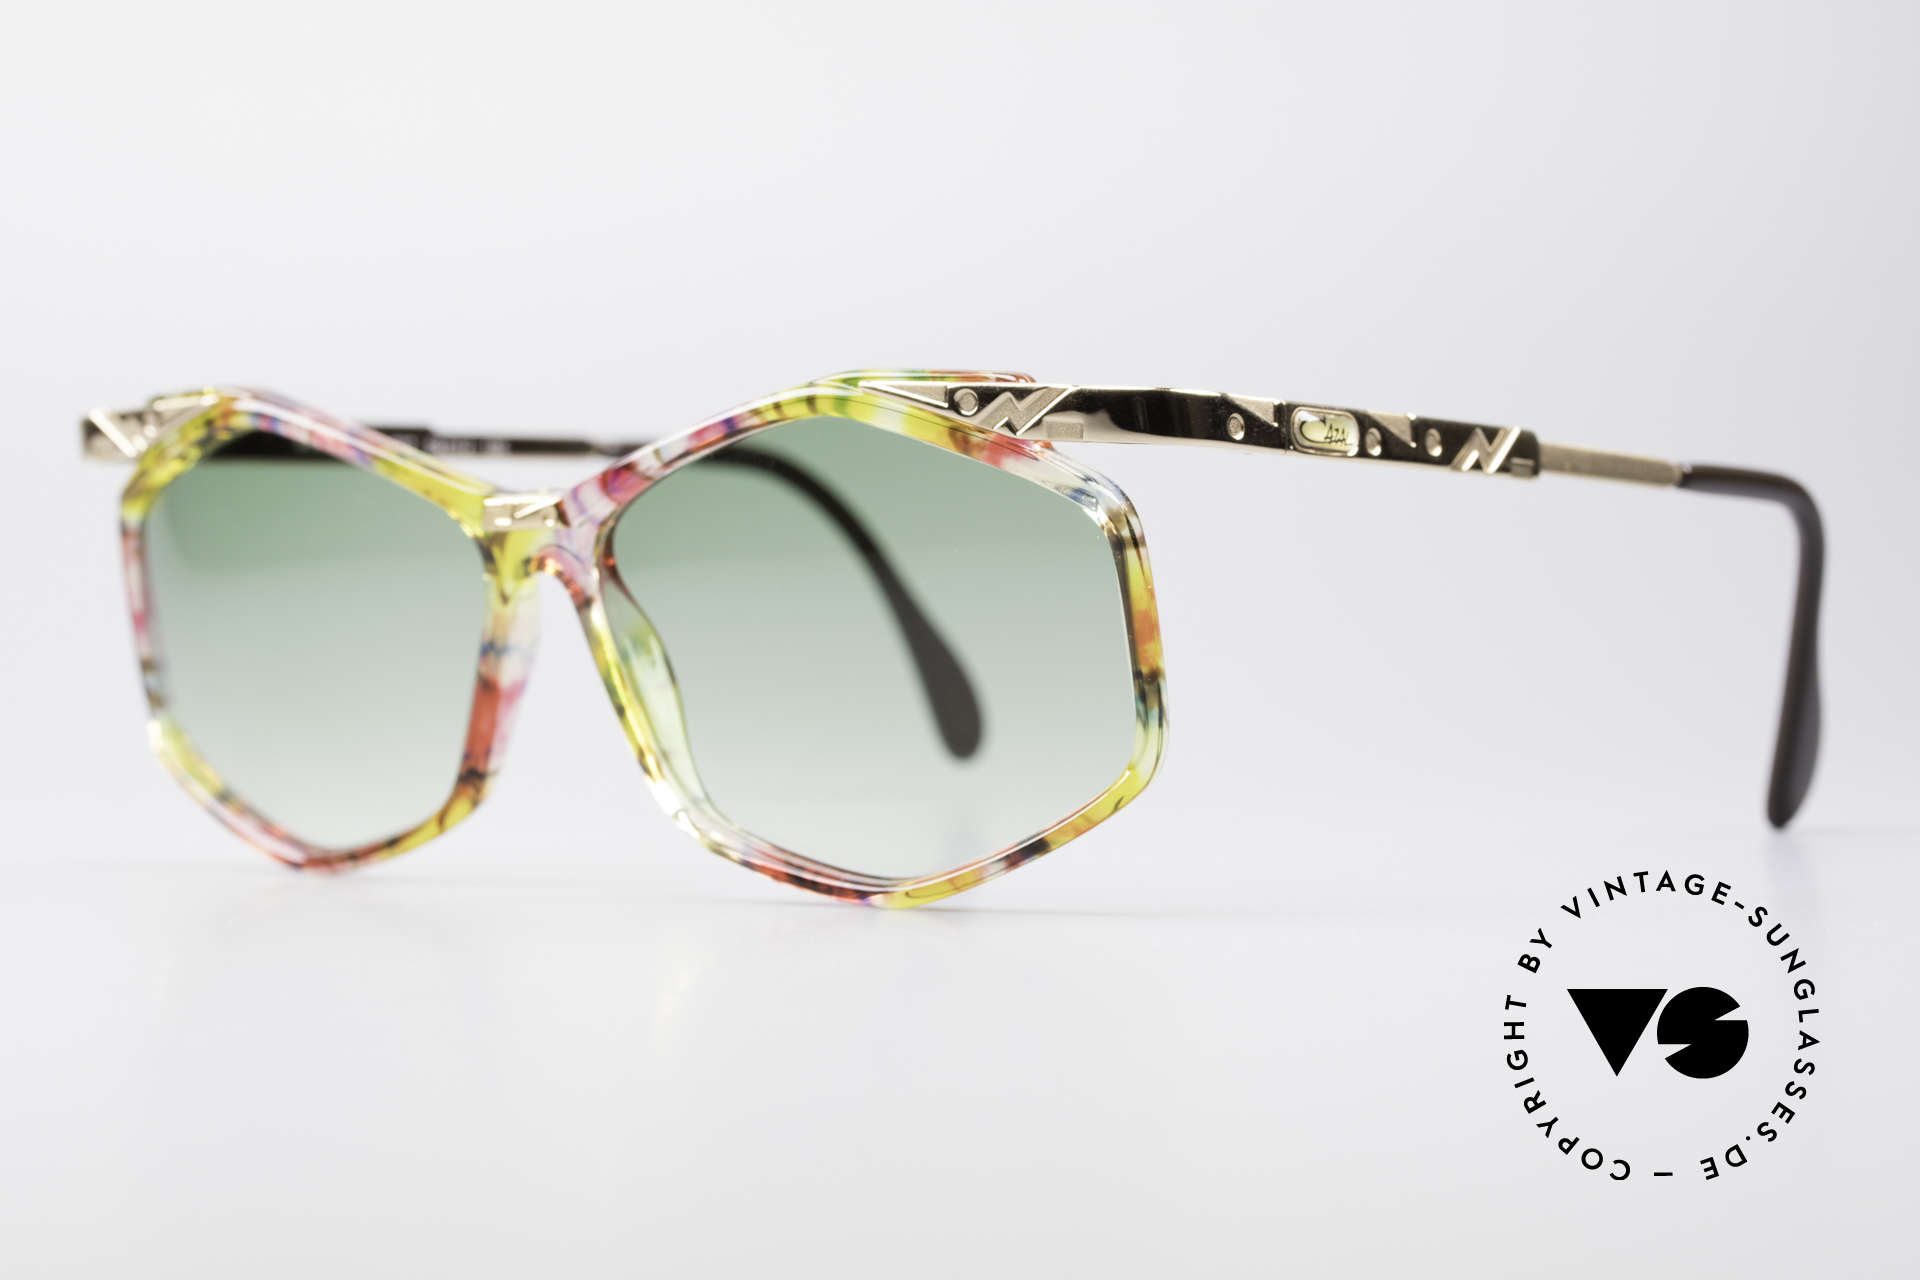 Cazal 354 Vintage 90s Sunglasses Women, fancy design & colorful paintwork (typically 1990's), Made for Women